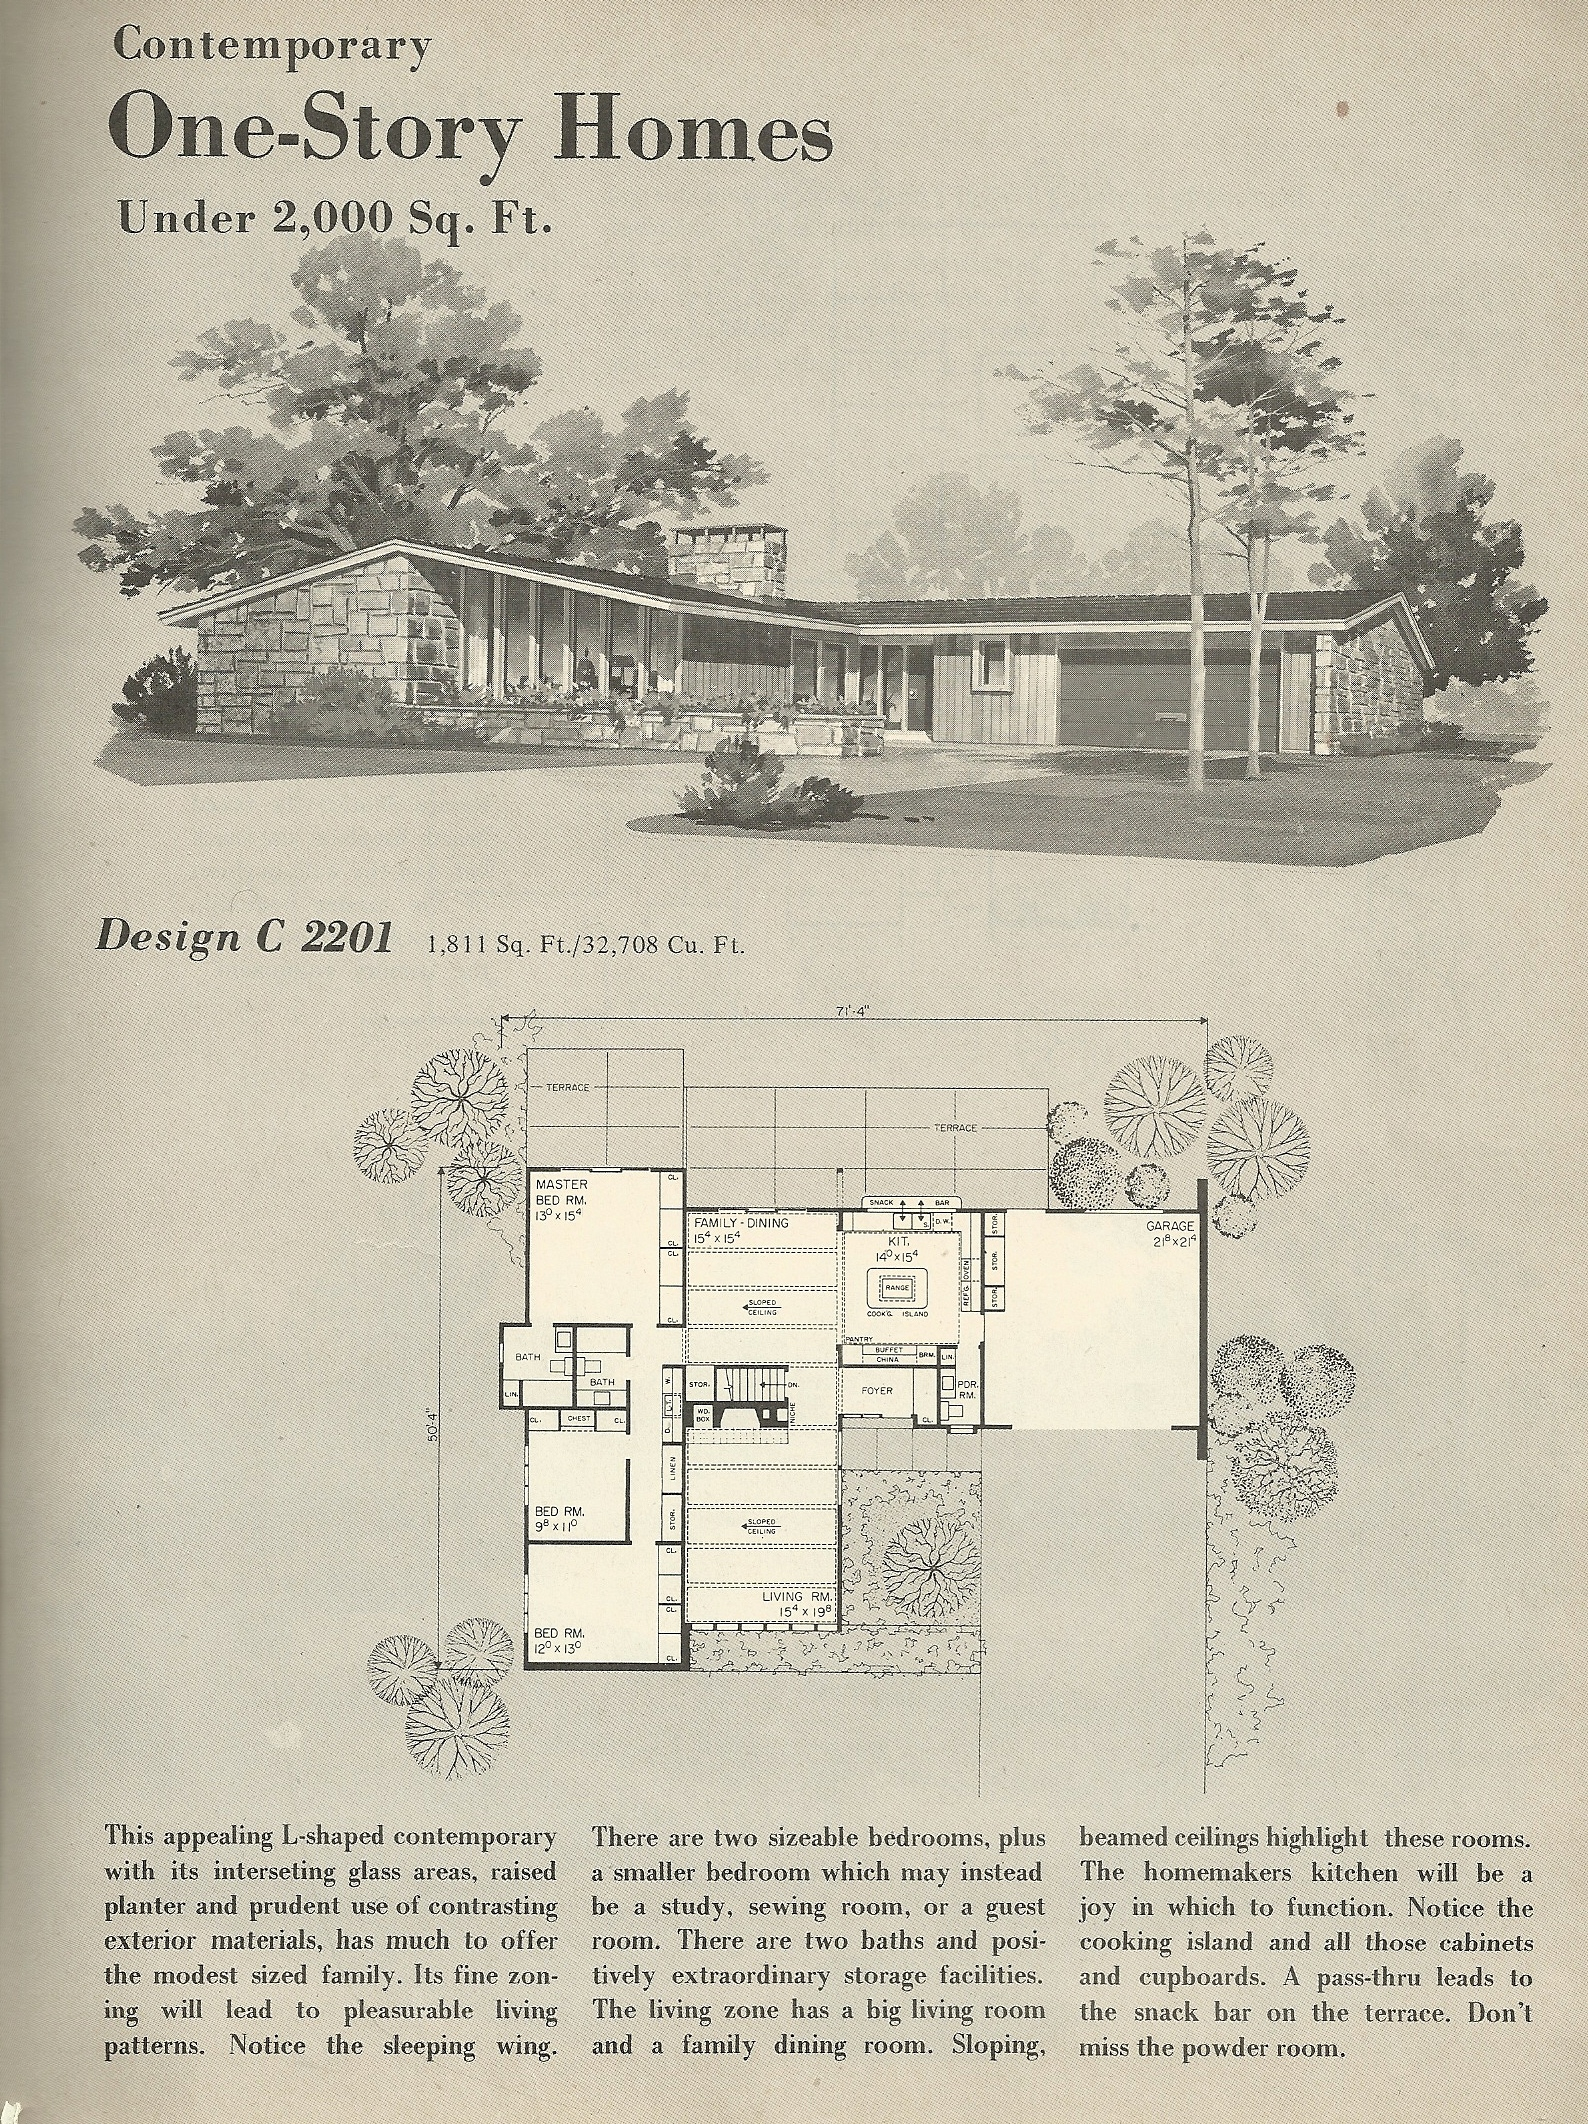 Vintage house plans 2201 antique alter ego for Mid century home plans